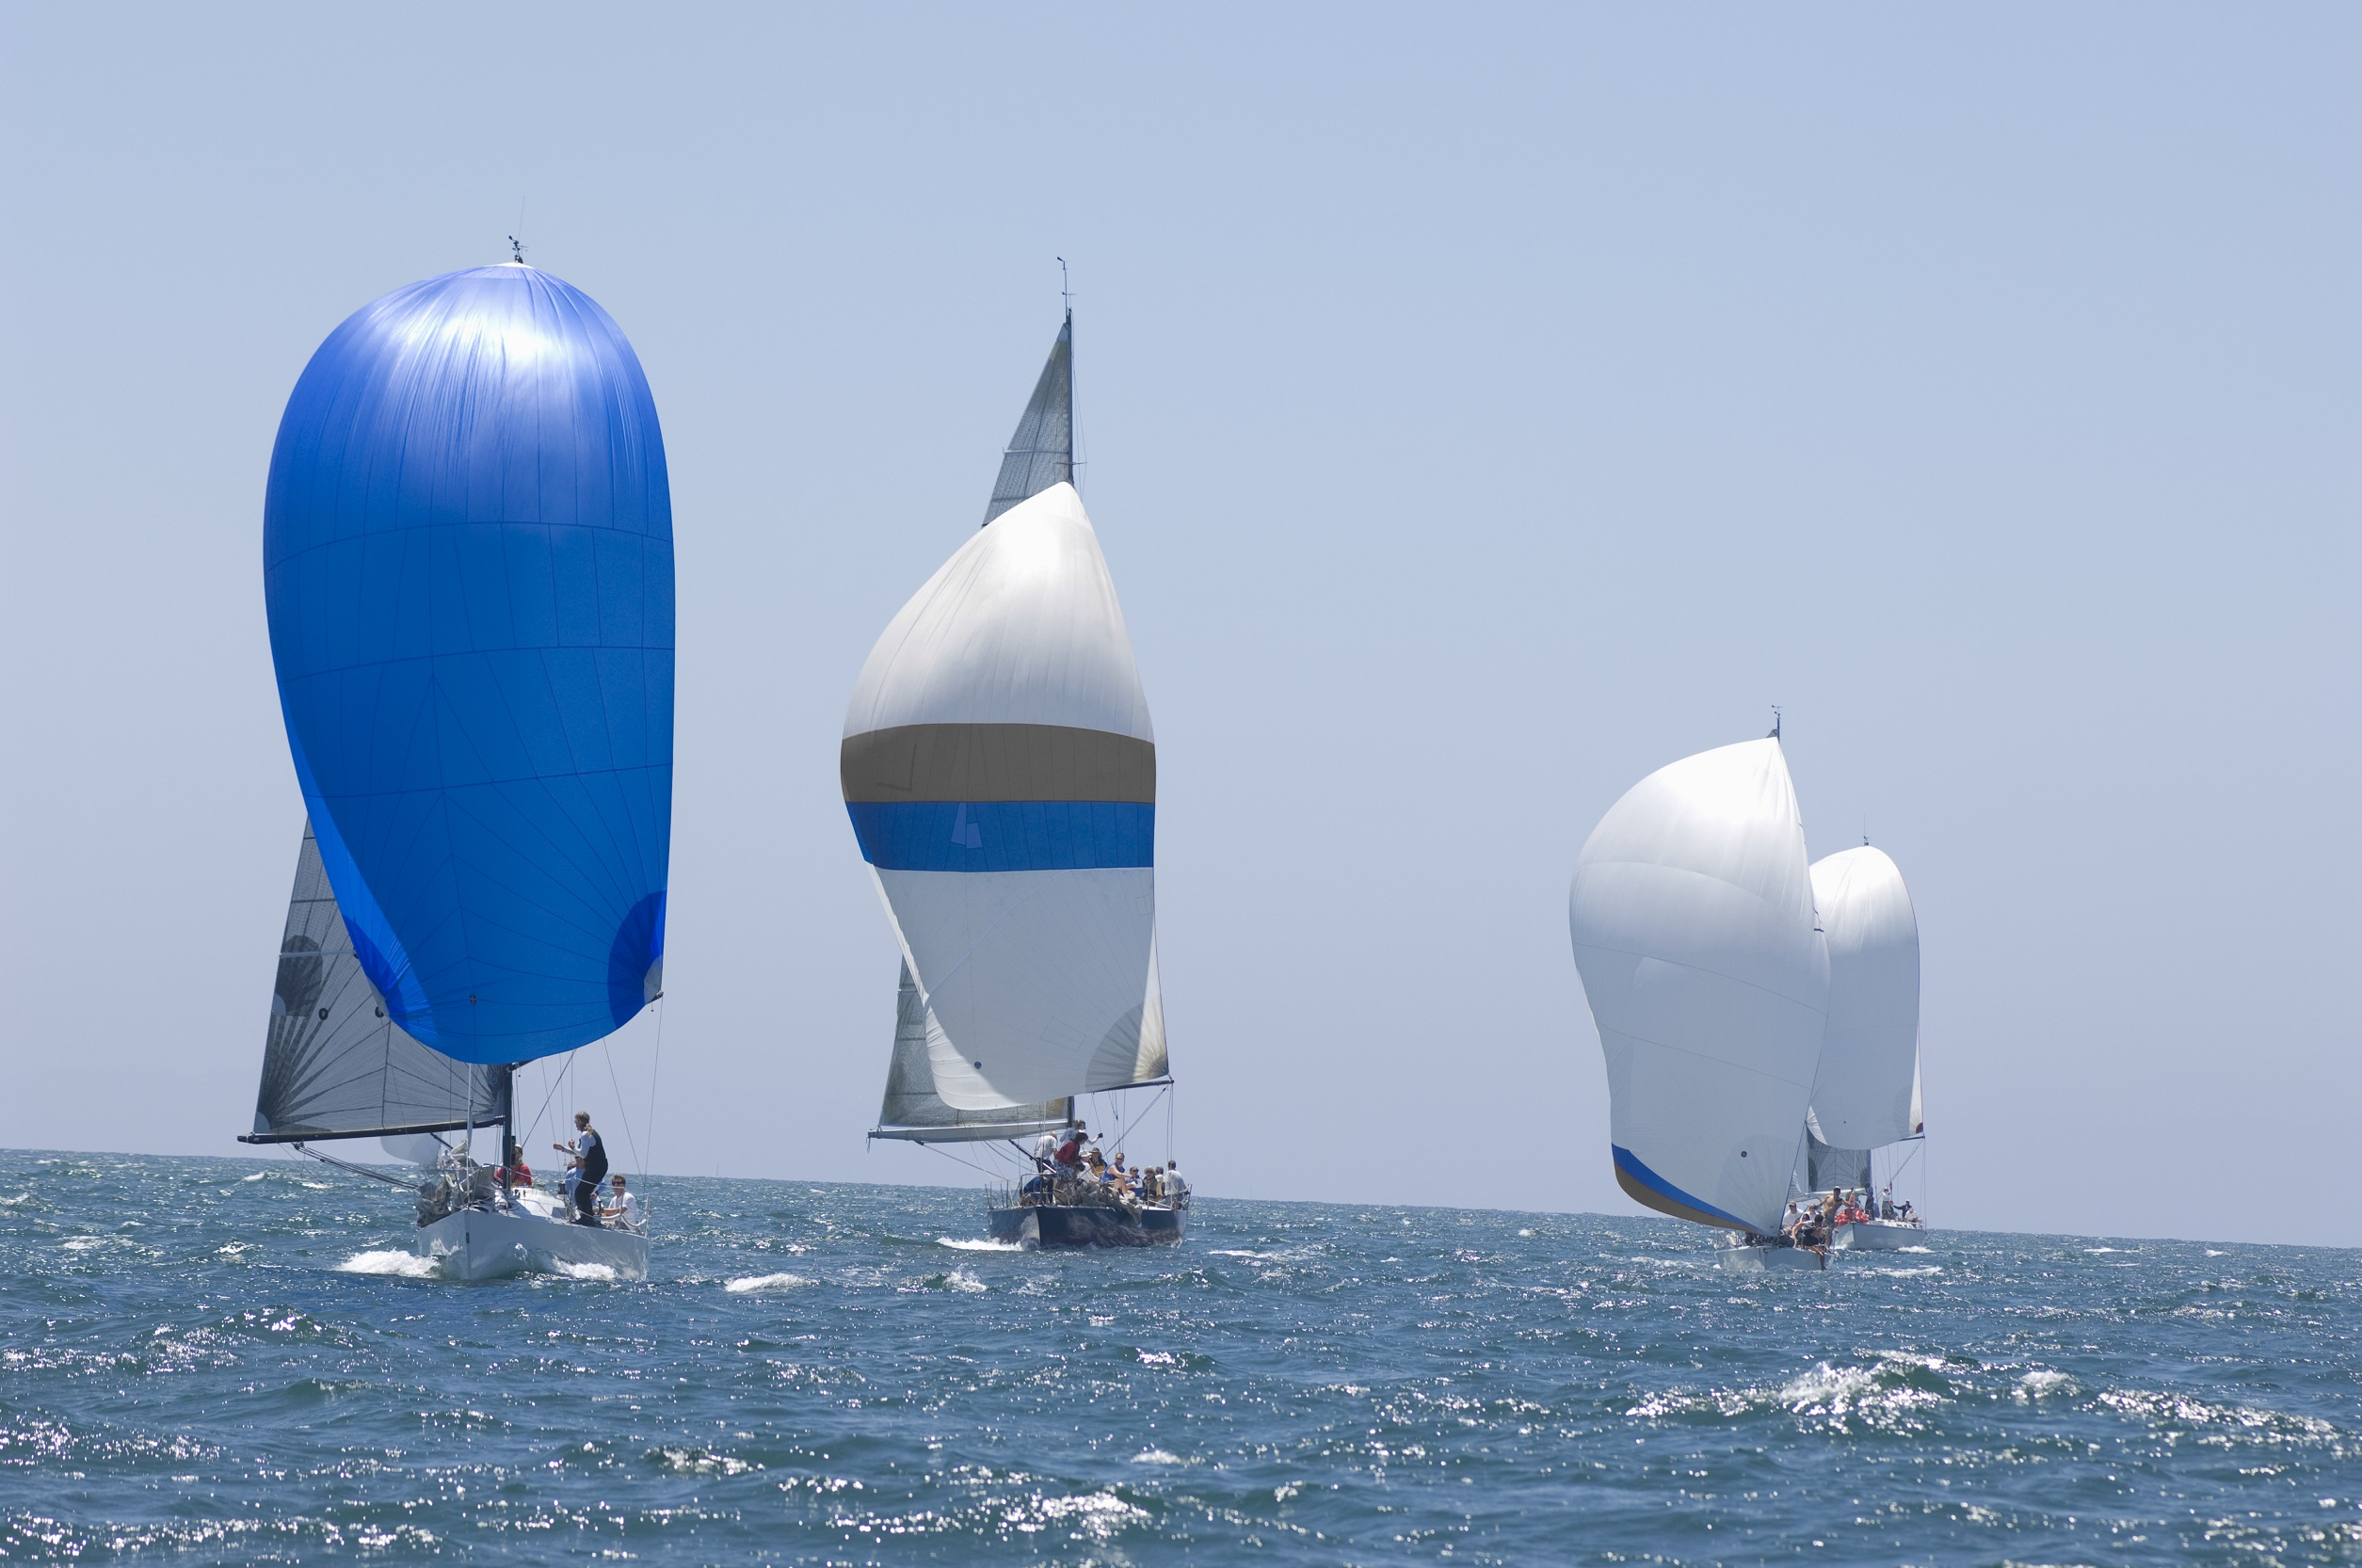 sailing-race-regattas-Mrduja-wind-spinnaker